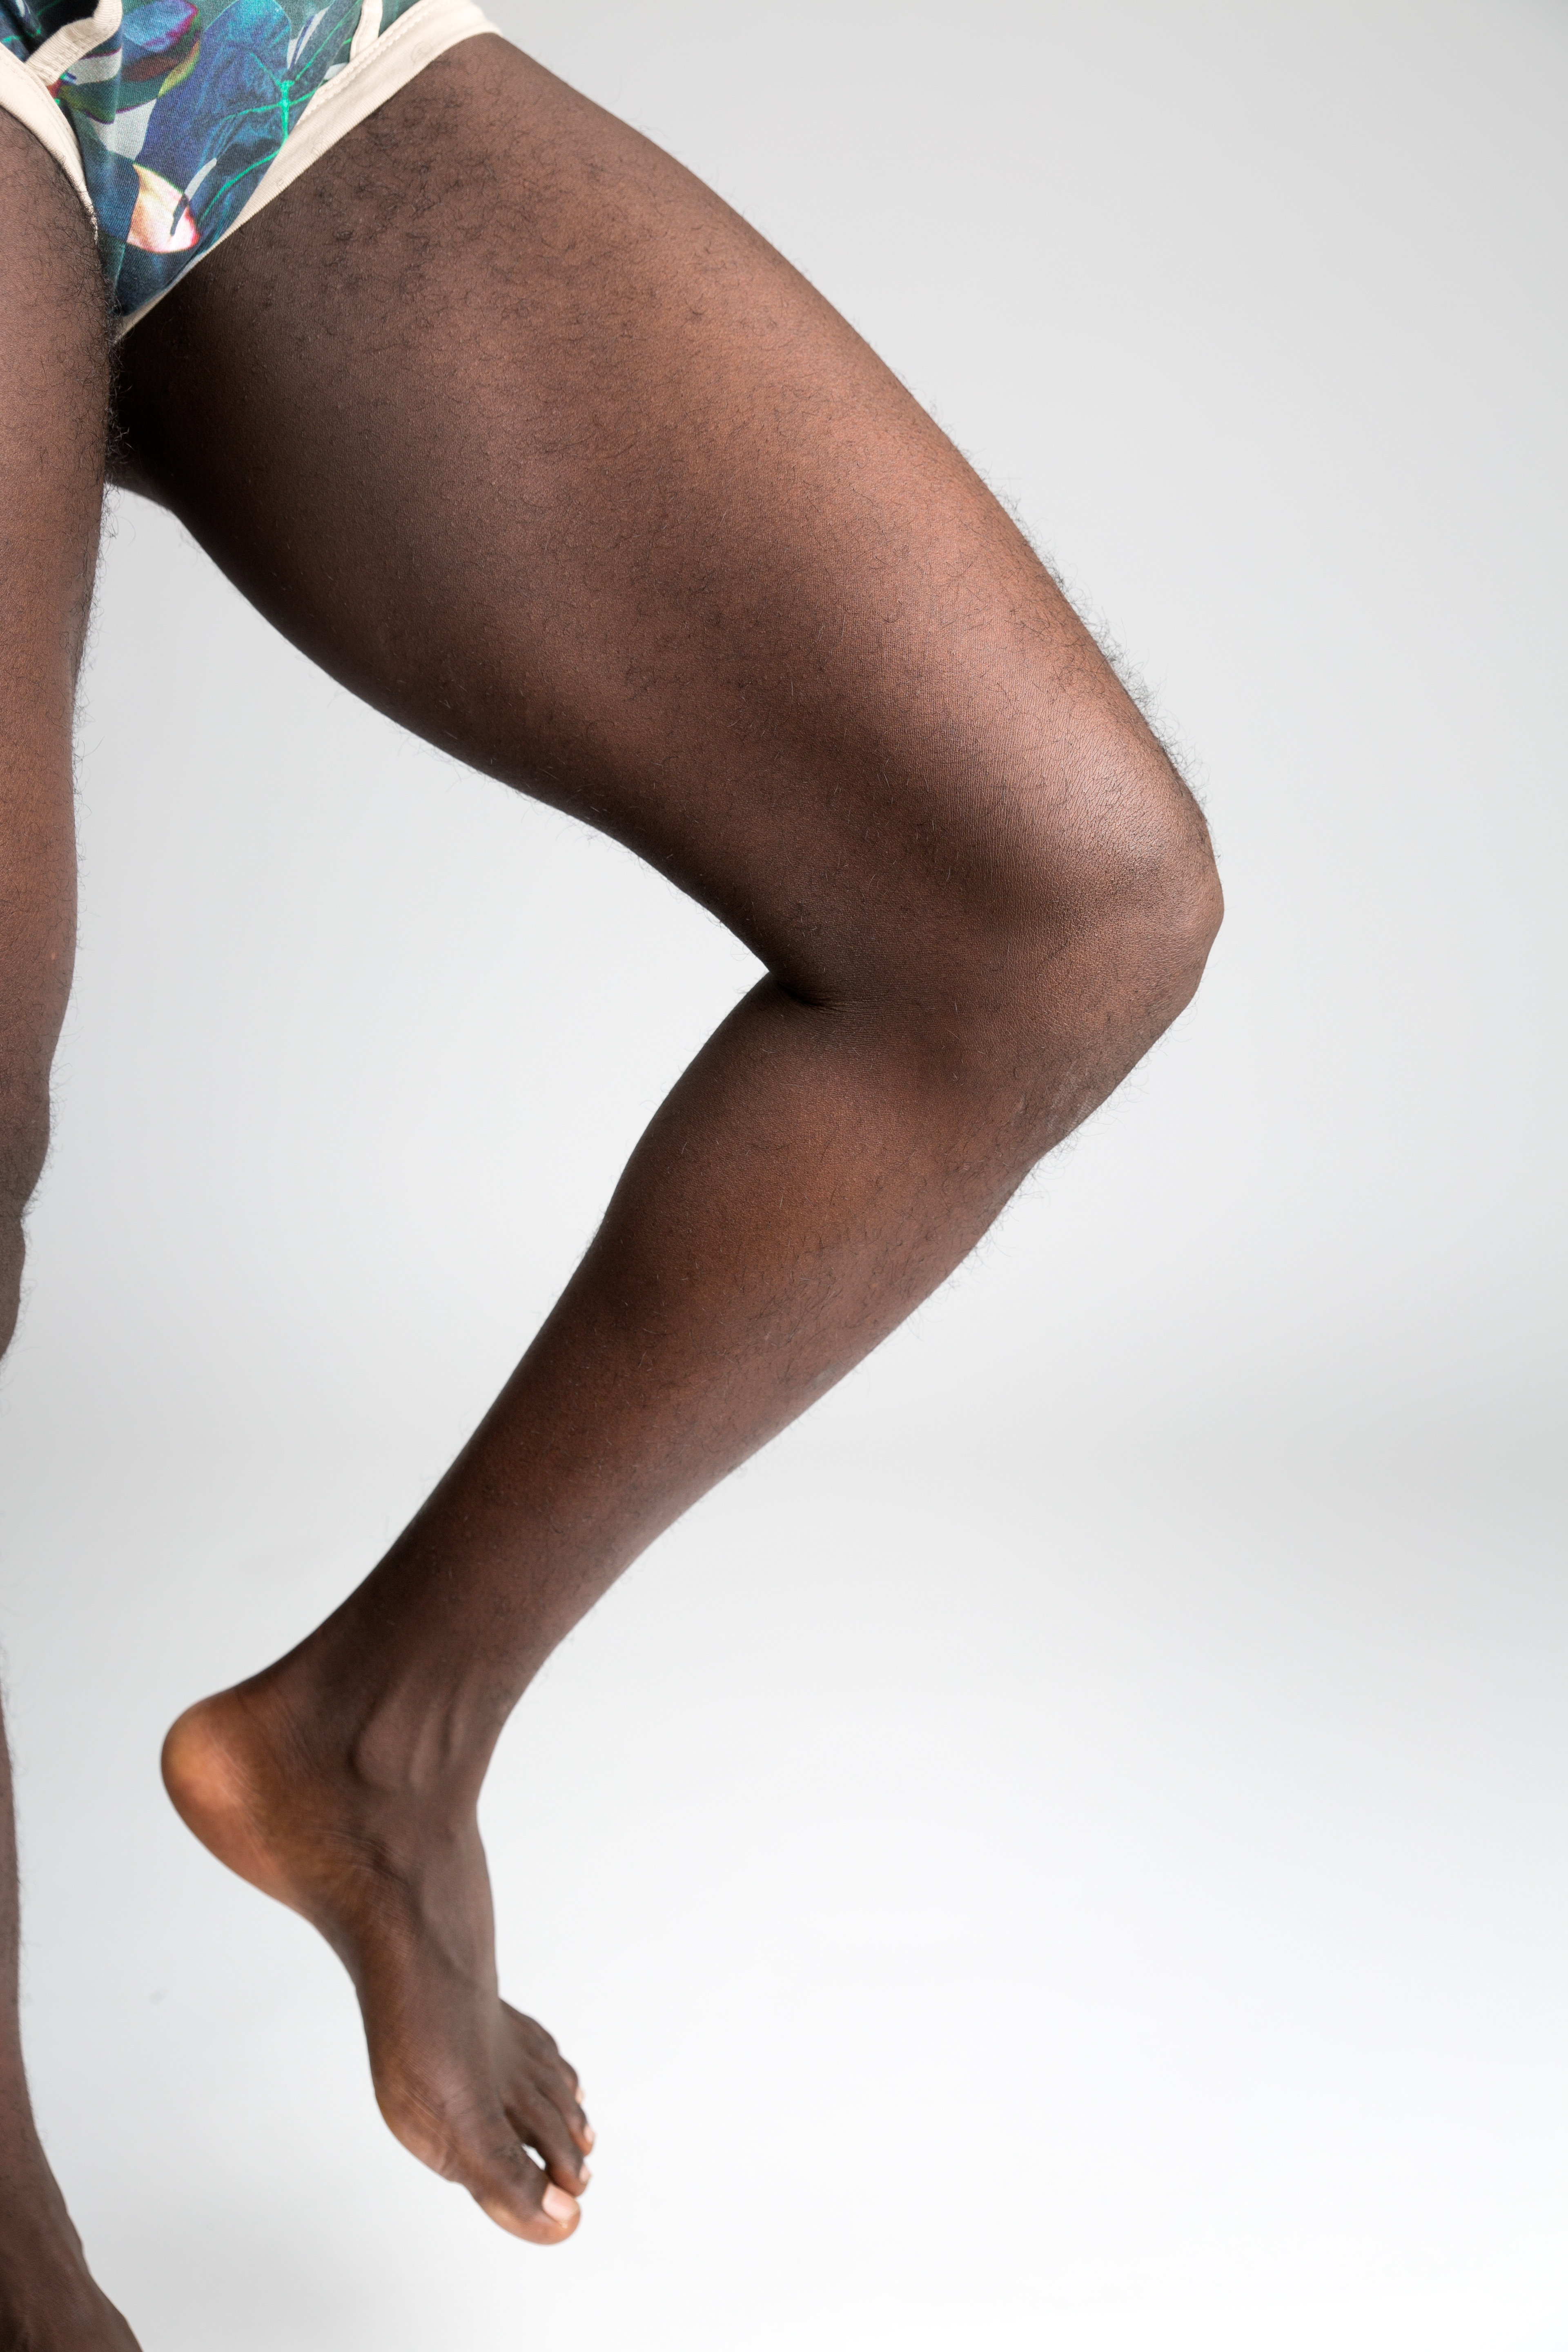 Muscle cramps can hinder your ability to exercise.